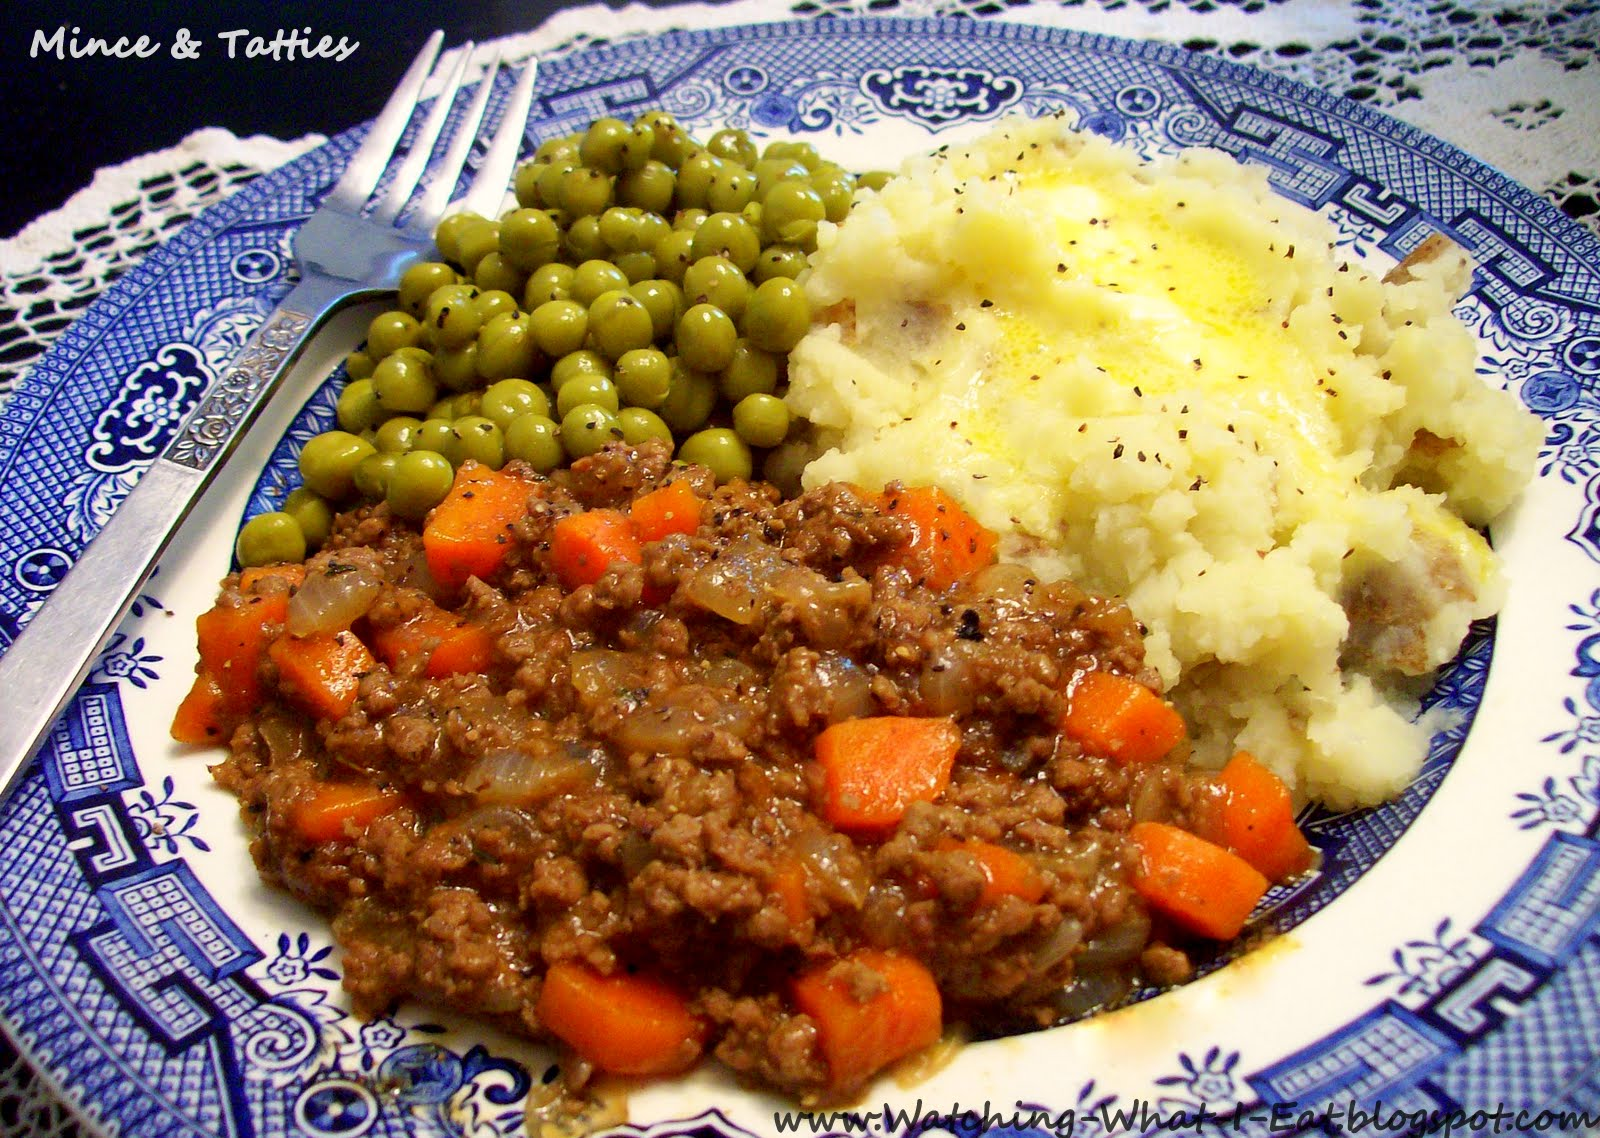 Watching what i eat mince tatties a favorite scottish meal mince tatties a classic scottish dish that is super easy to make budget friendly a dinner that is perfect for the whole family to enjoy forumfinder Choice Image